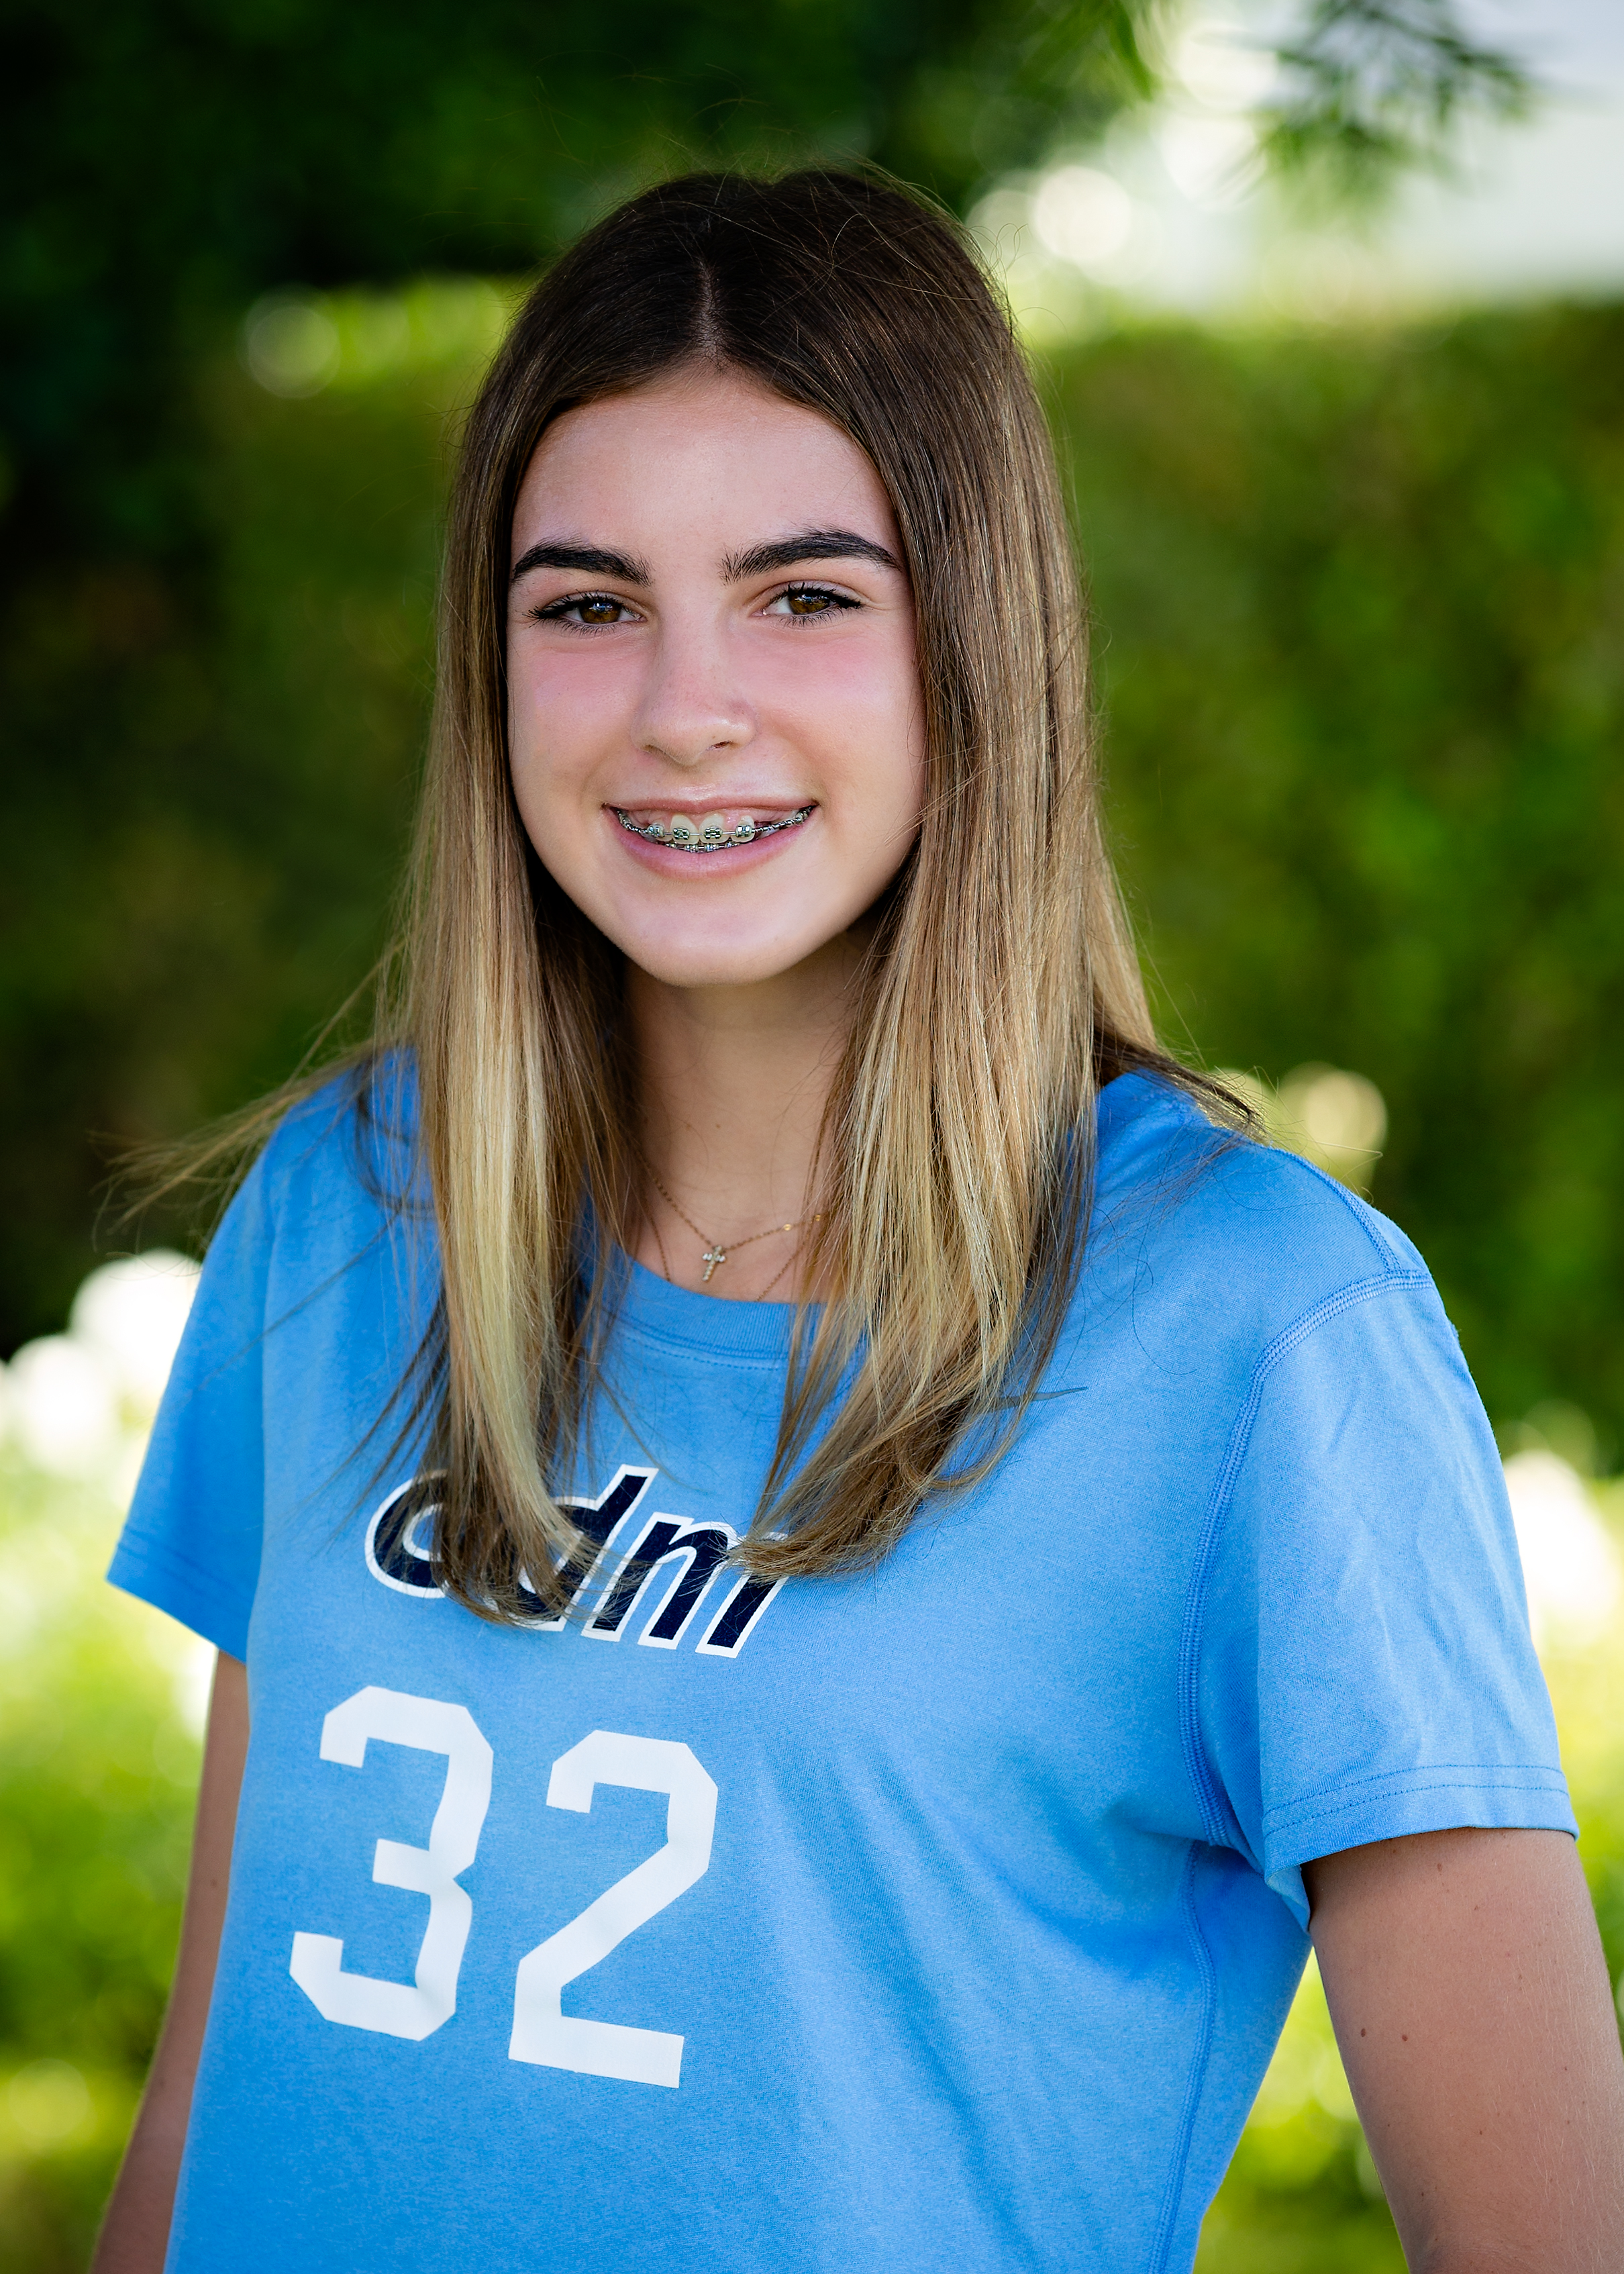 Junior Varsity Cdm Girls Volleyball